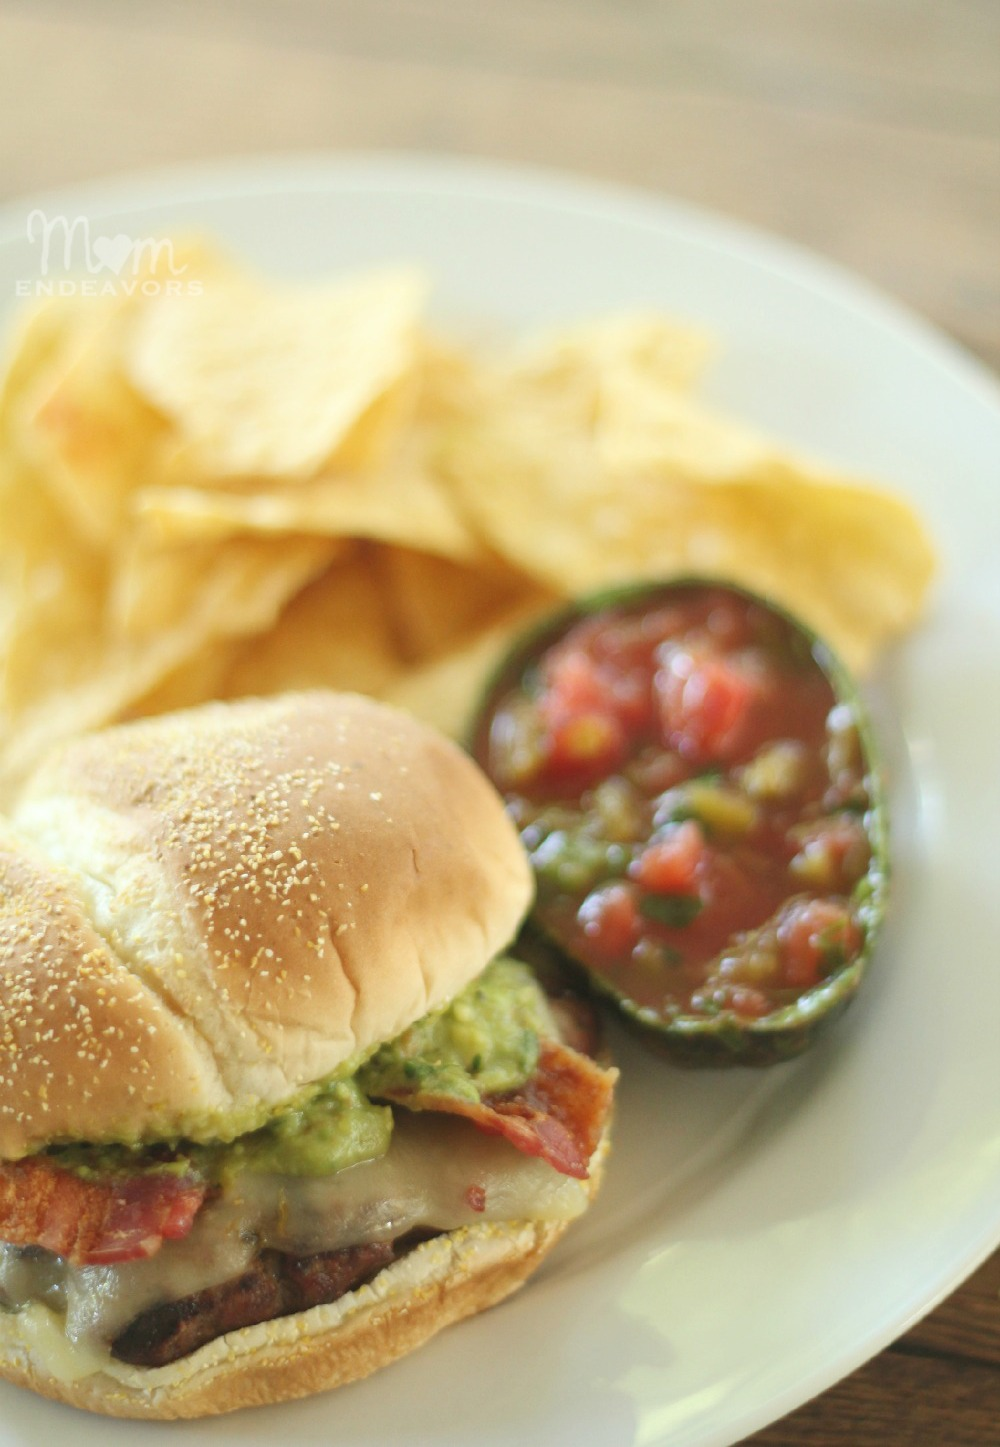 Southwestern Bacon Cheeseburgers with Salsa